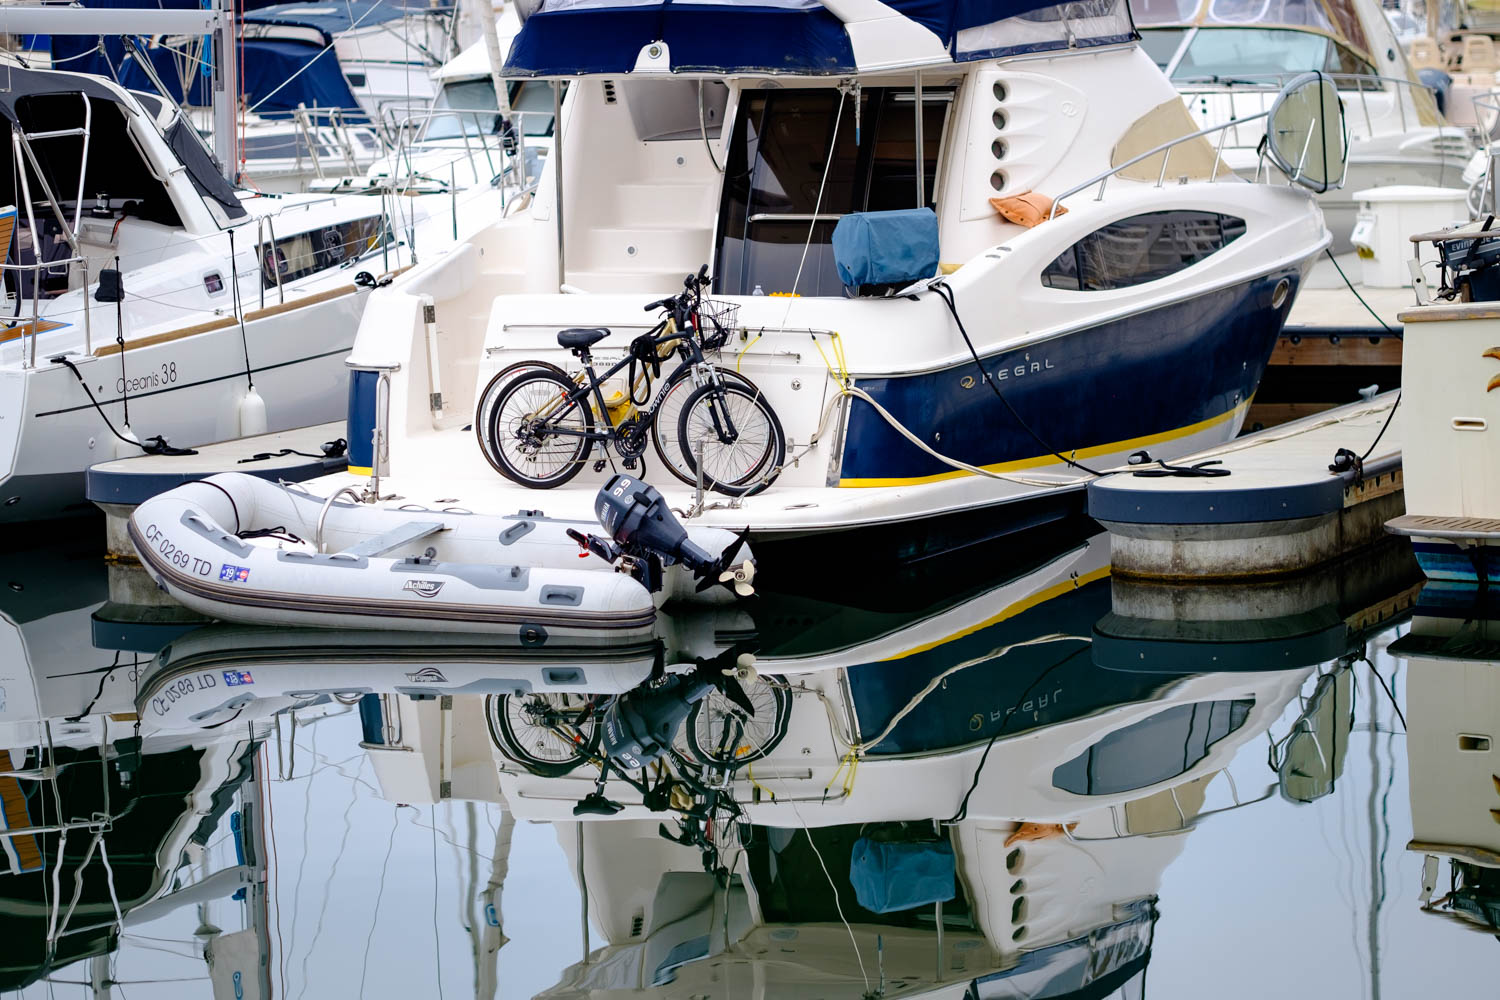 Cause you need bikes on the ocean